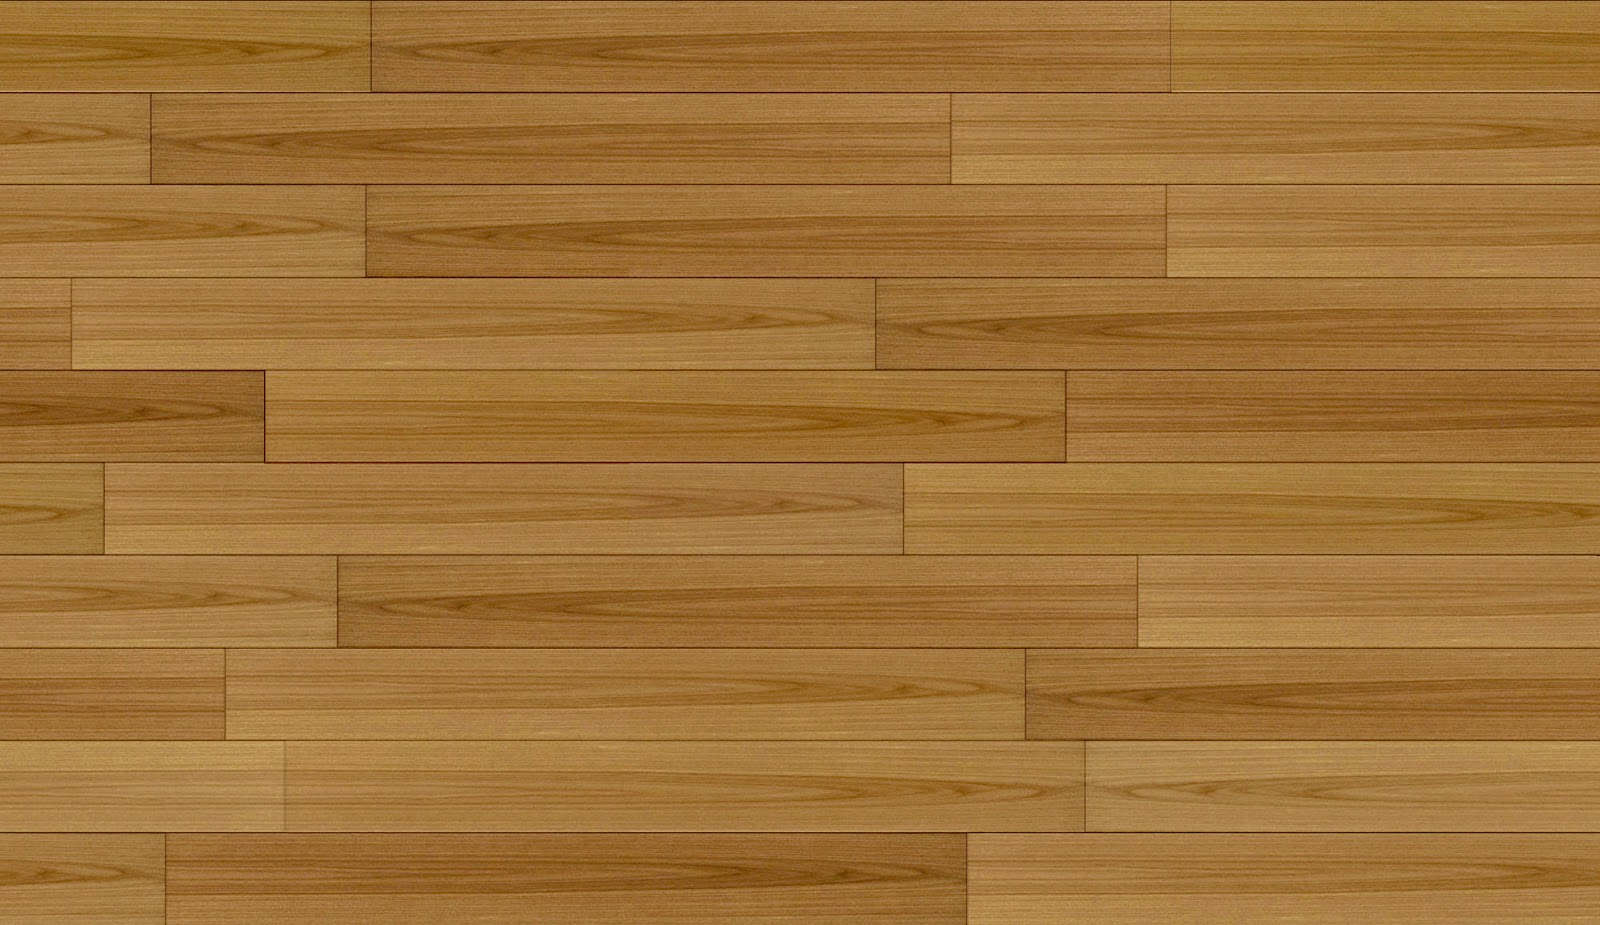 Sketchup texture april 2013 for Timber flooring